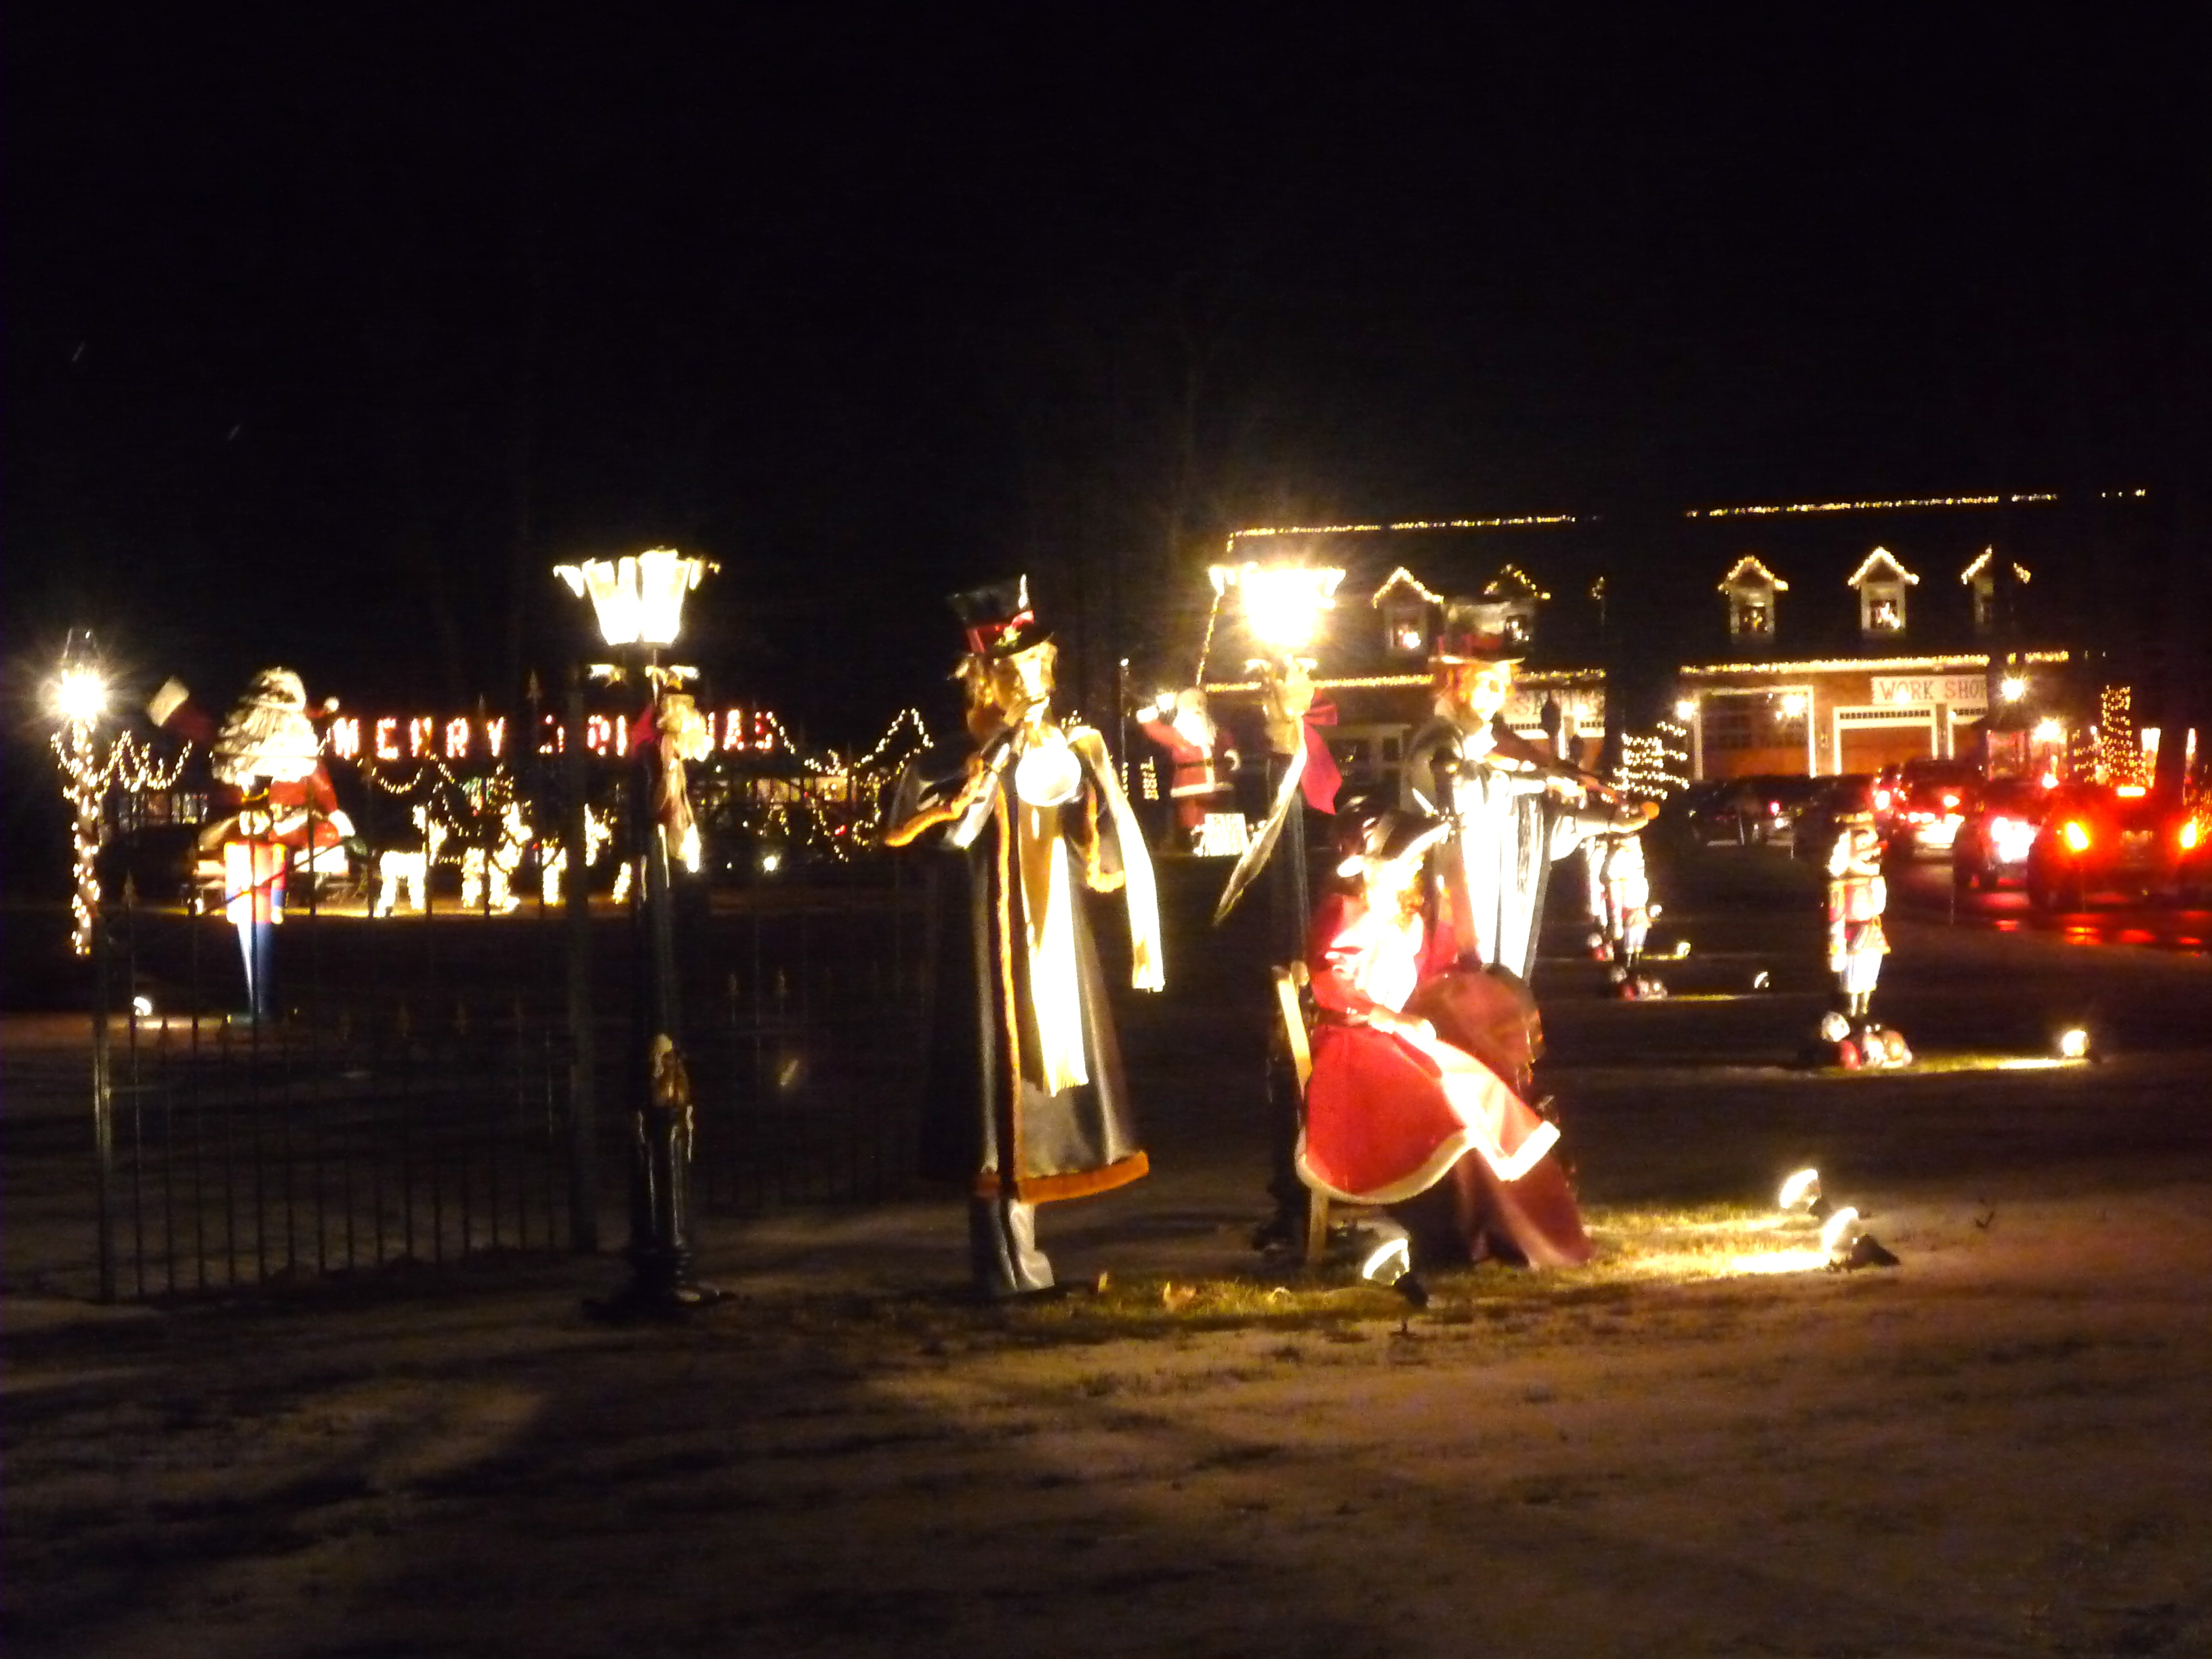 The Amazing Millis Wonderland Christmas Holiday Display, Dec. 2-25, in Millis, Mass. (CLOSED)